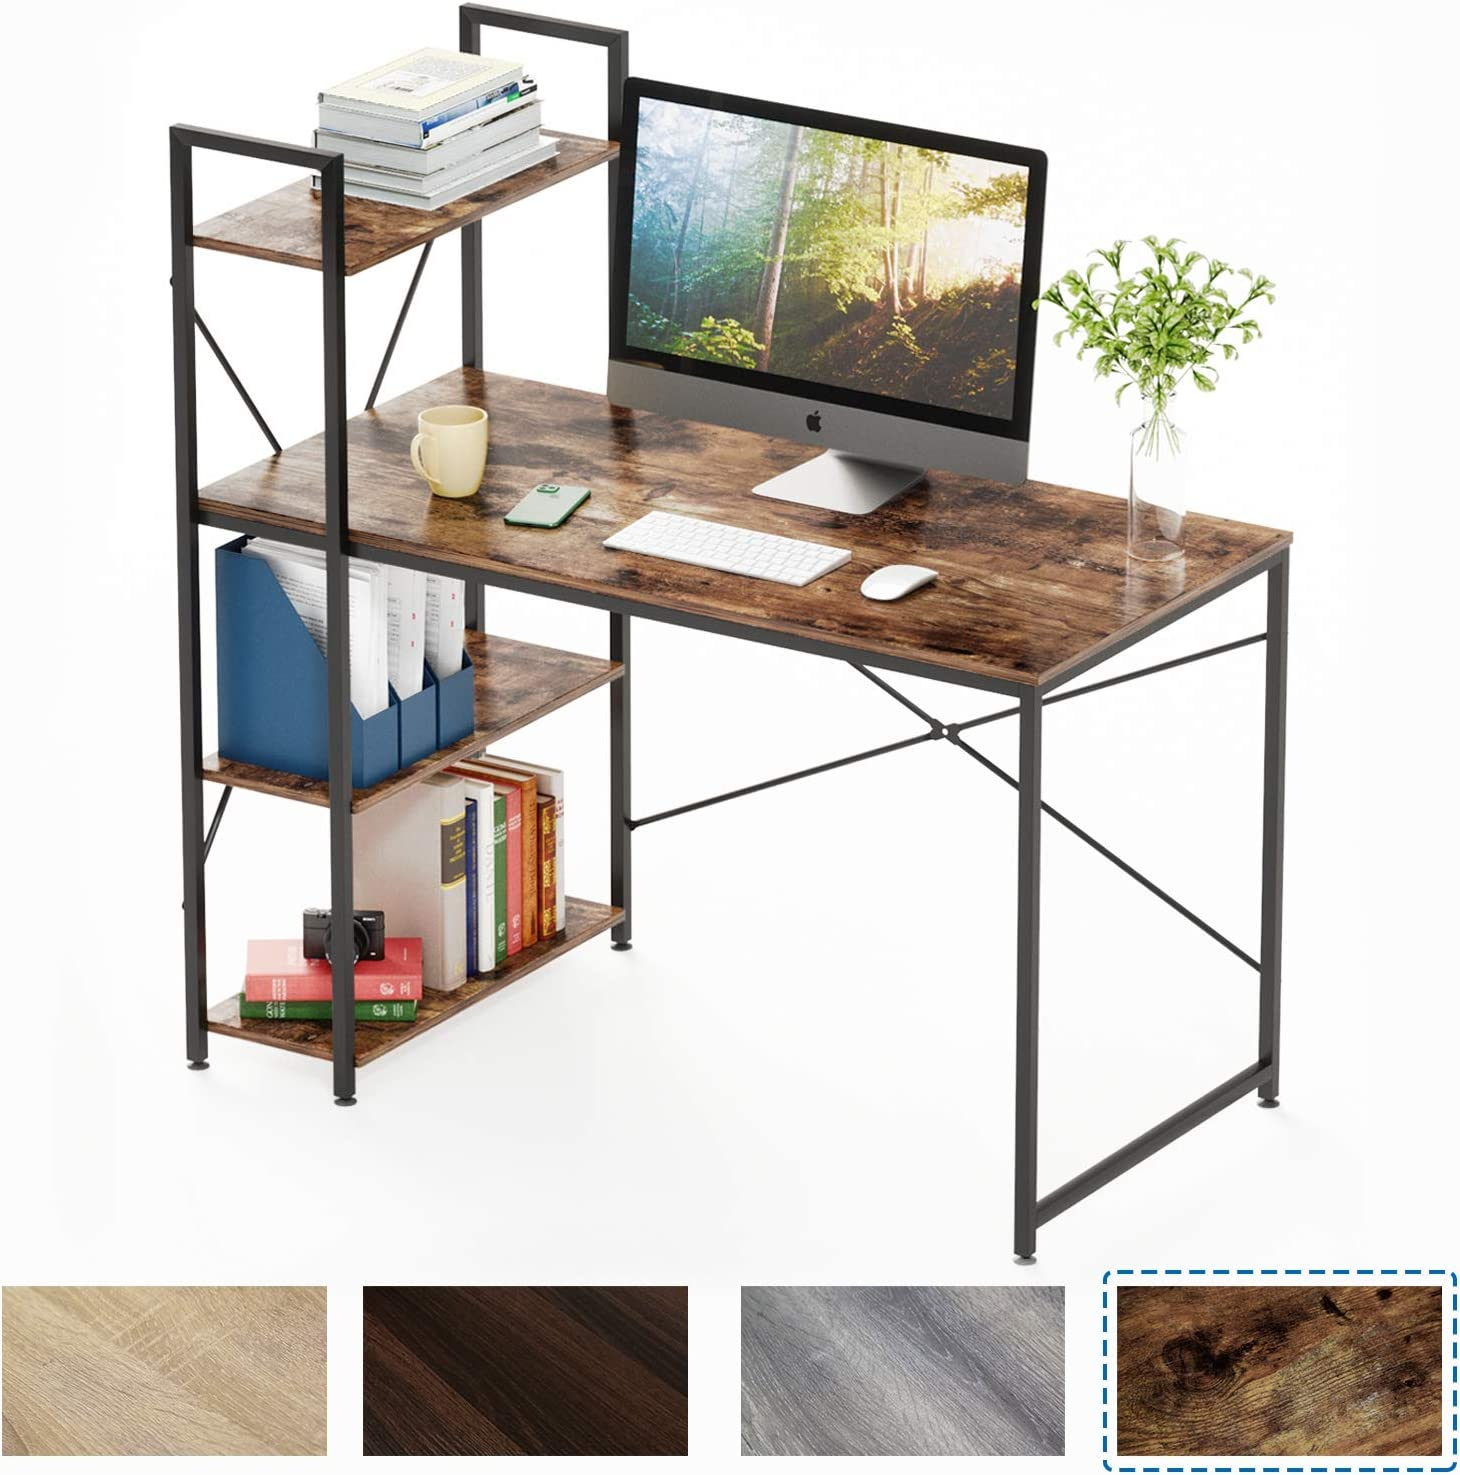 Bestier Computer Desk with Shelves,Writing Desk with Storage Bookshelf Reversible Study Table Office Corner Desk with Shelves Home Office Desk with Bookshelf Easy Assemble (47 Inch, Rustic Brown)